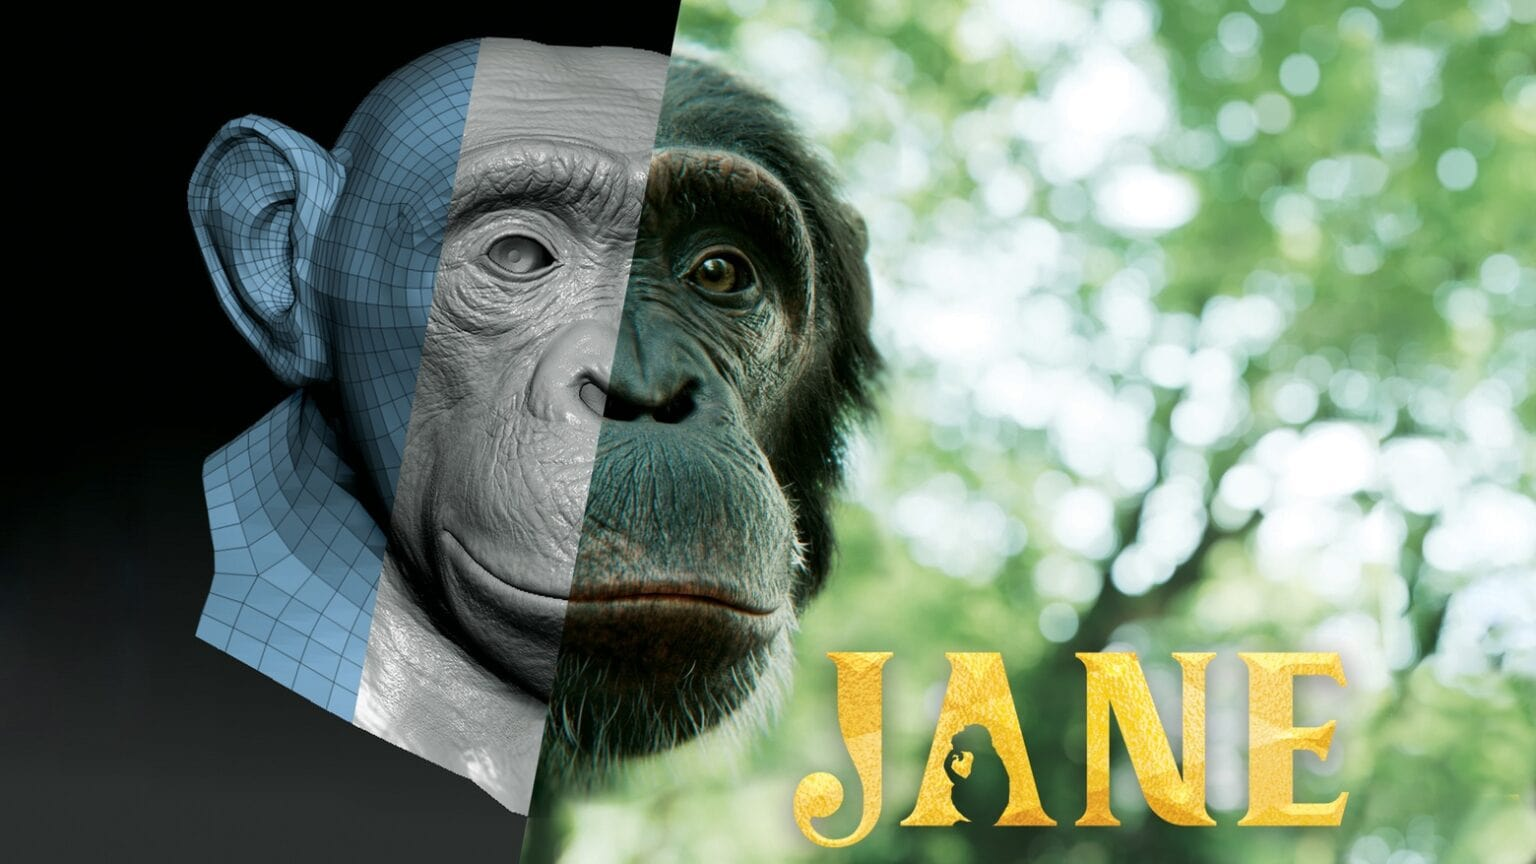 Apple goes ape with 'Jane,' inspired by chimp-researcher Jane Goodall